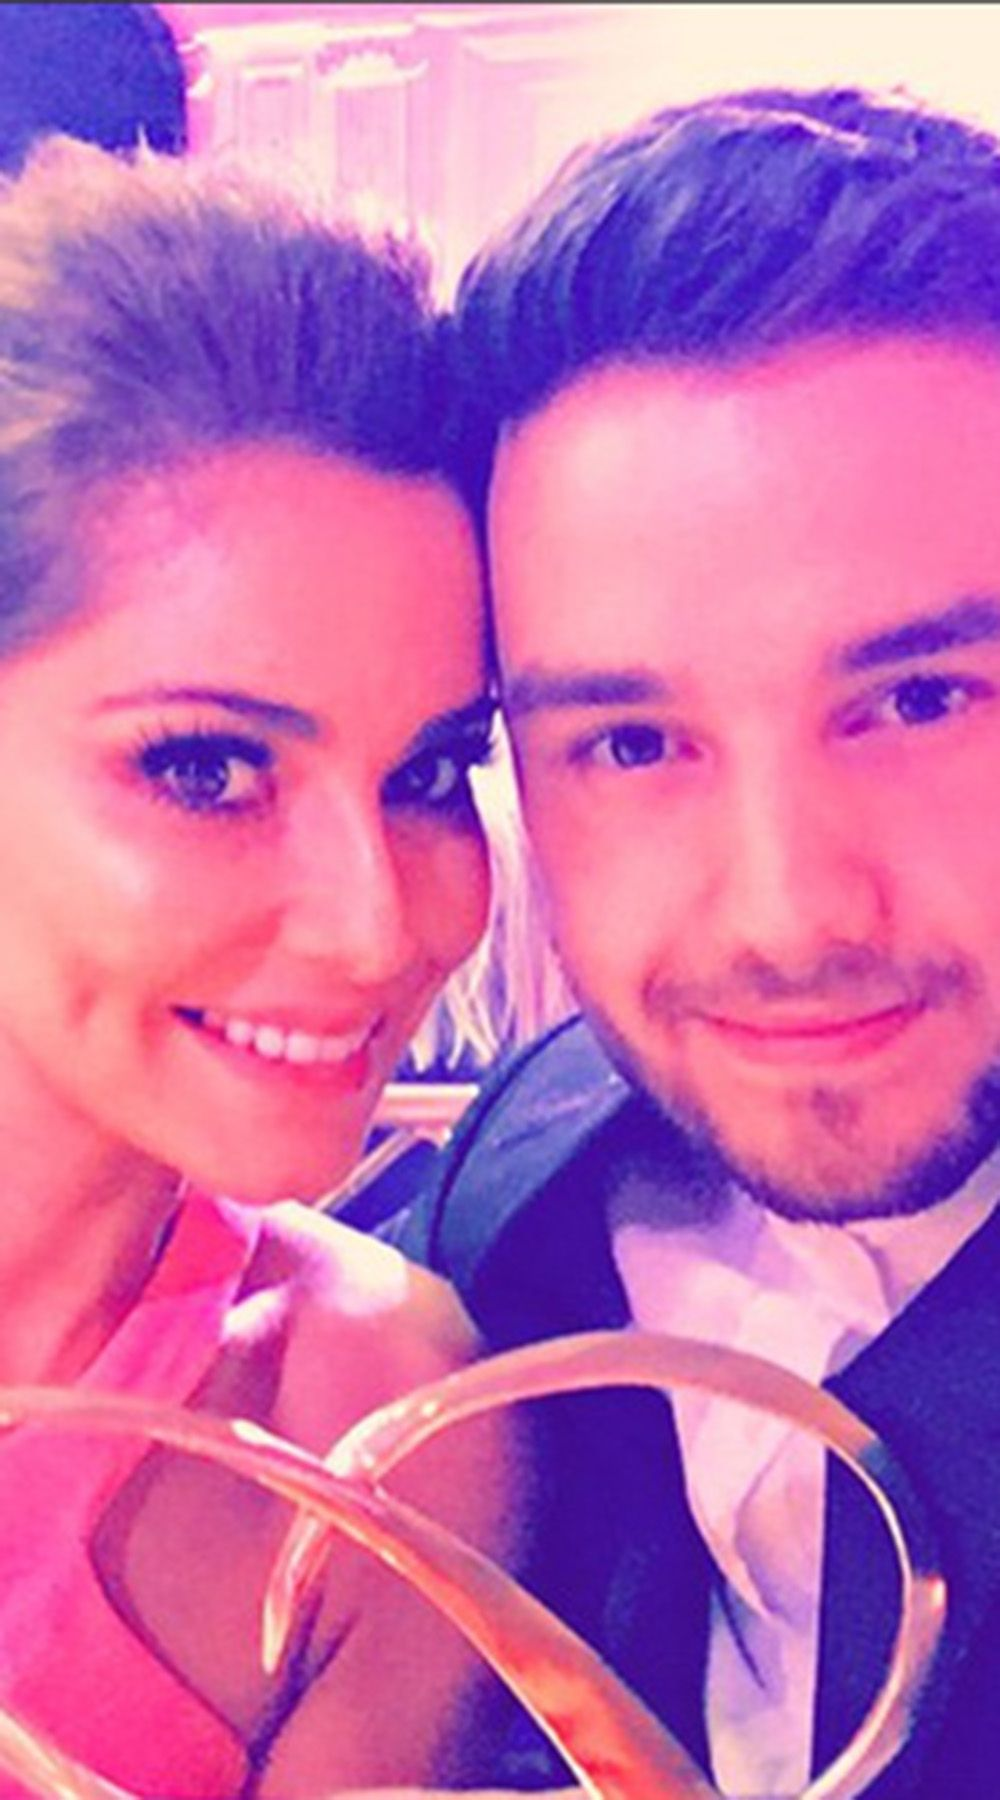 OMG. It's the Cheryl and Liam Payne baby news we've *all* been waiting for...